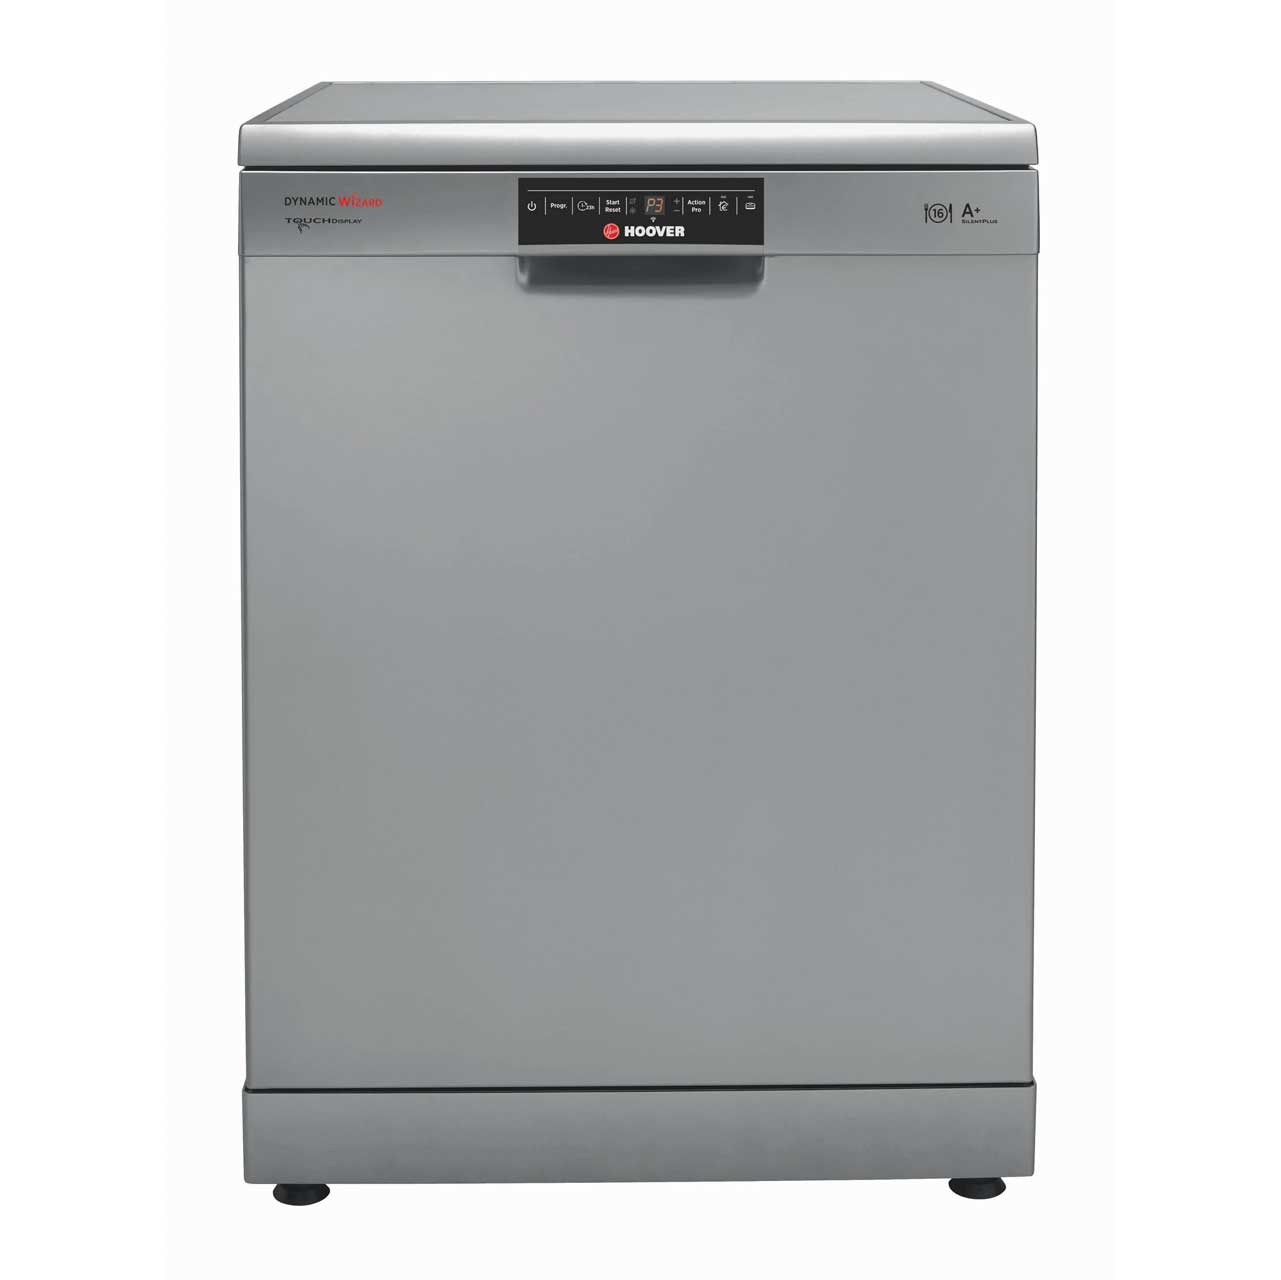 Hoover Dynamic Wizard DYM762TX Free Standing Dishwasher in Silver